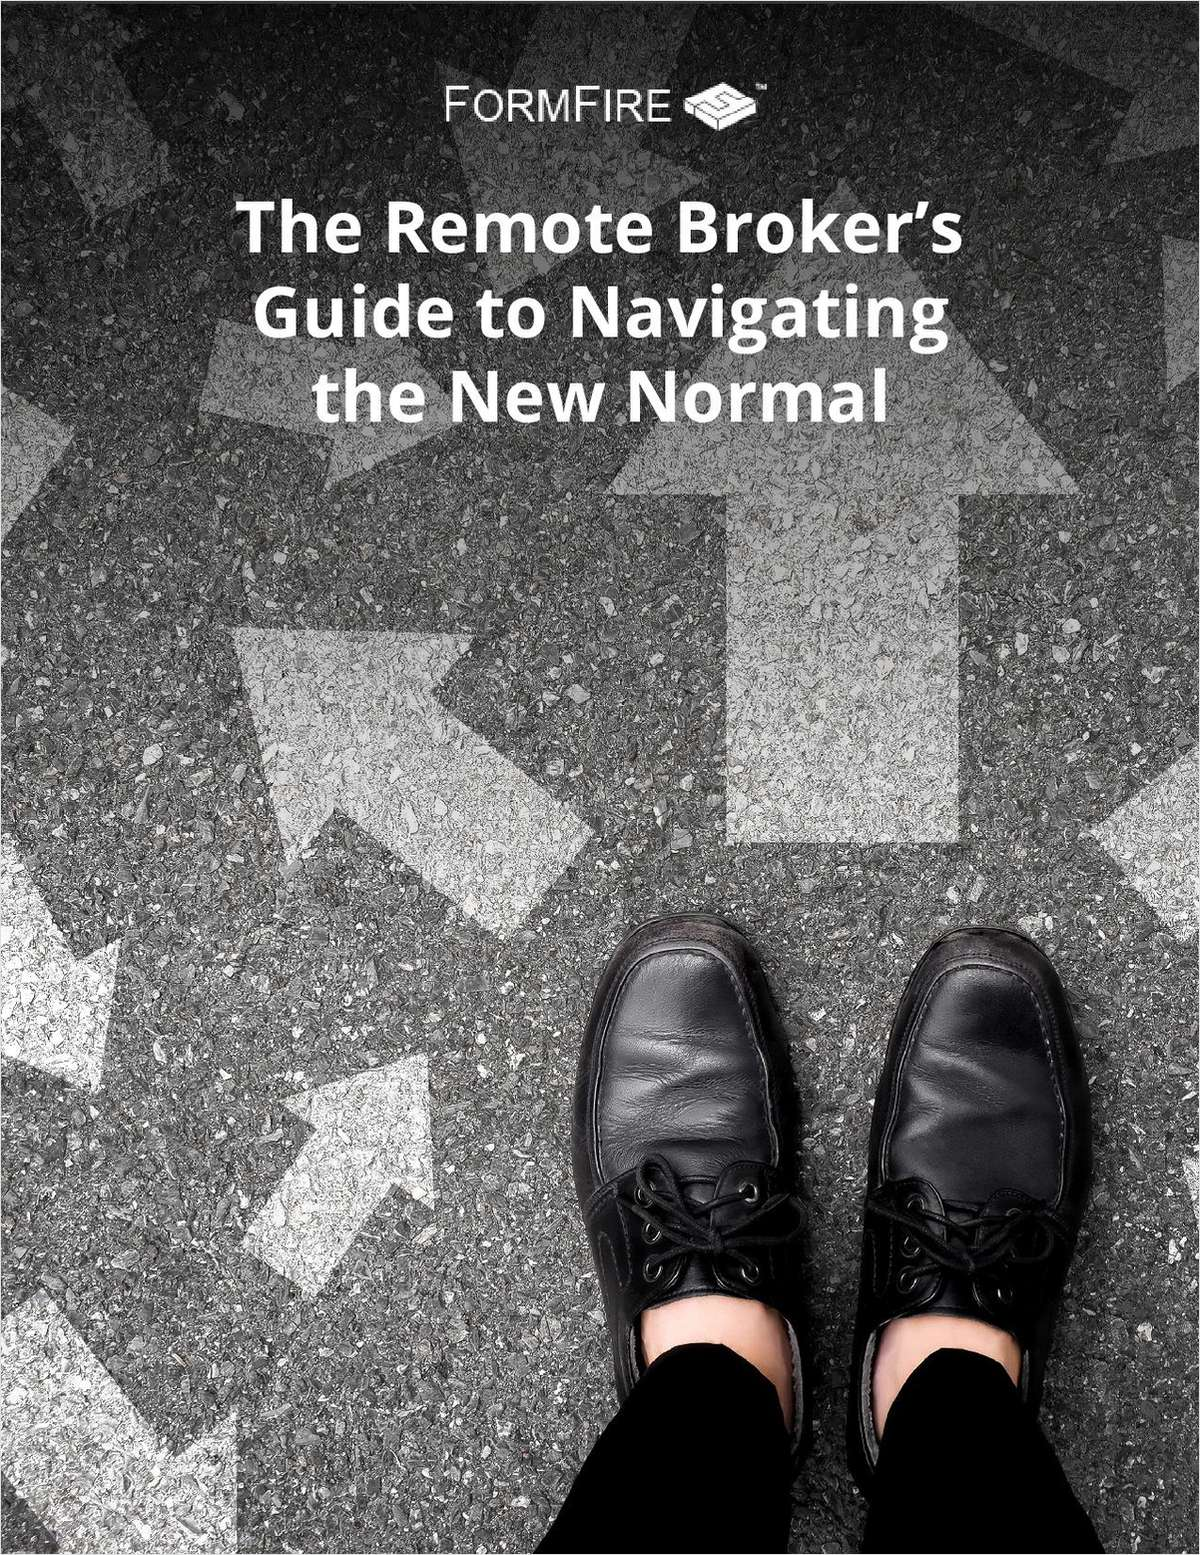 The Remote Broker's Guide to Navigating the New Normal